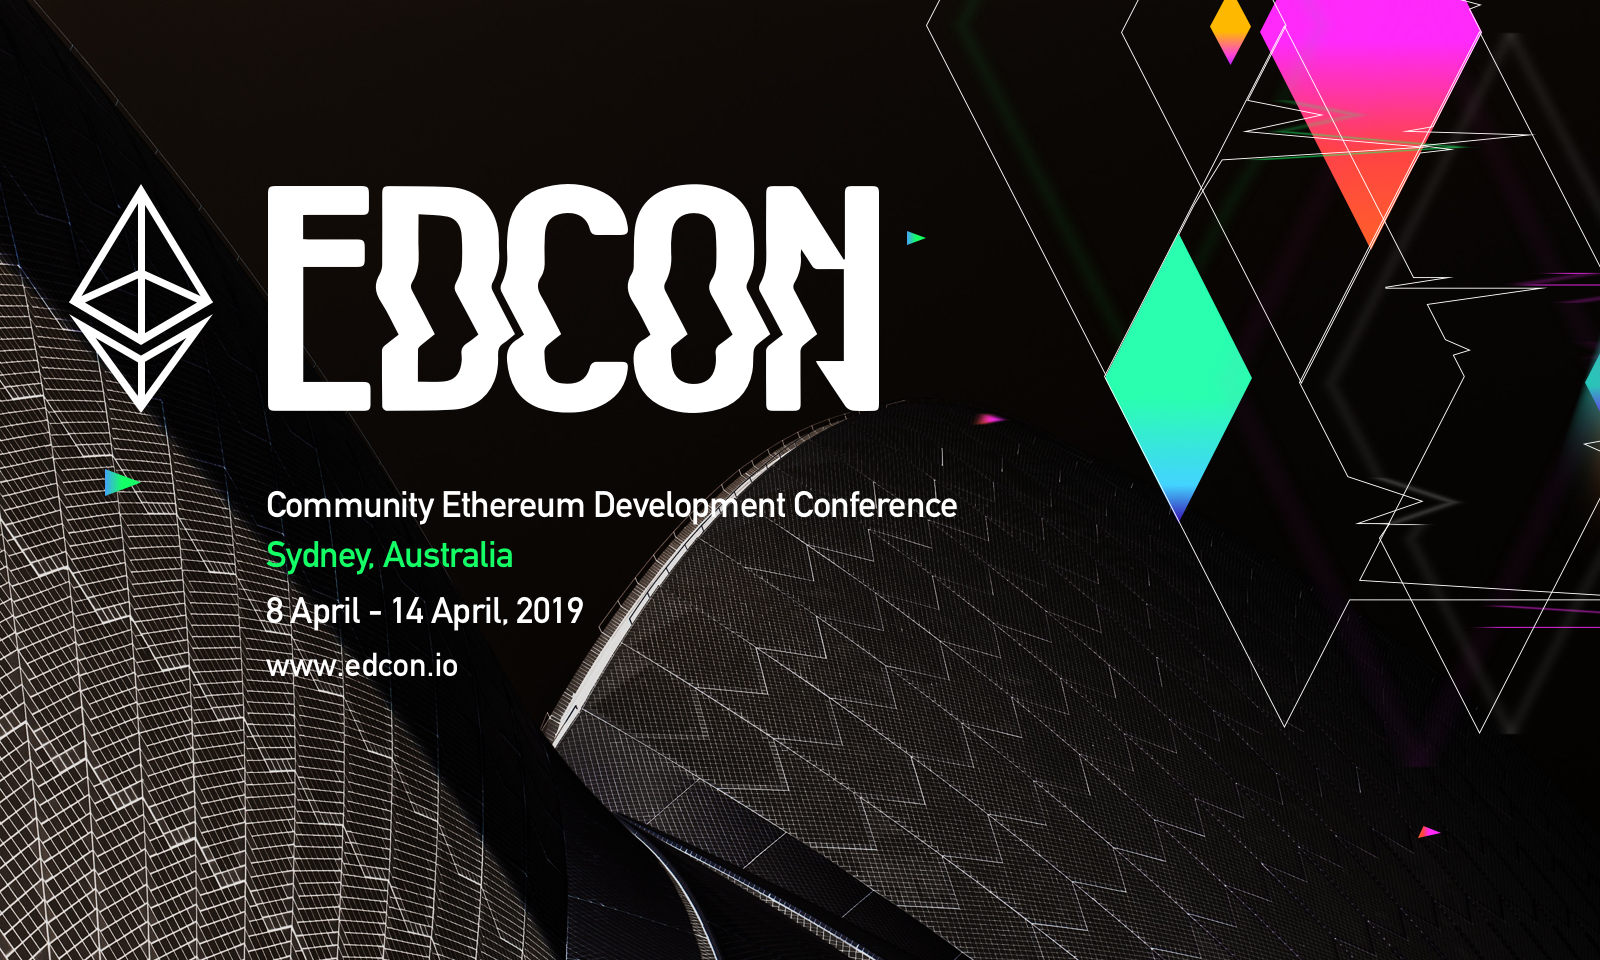 EDCON event 2019